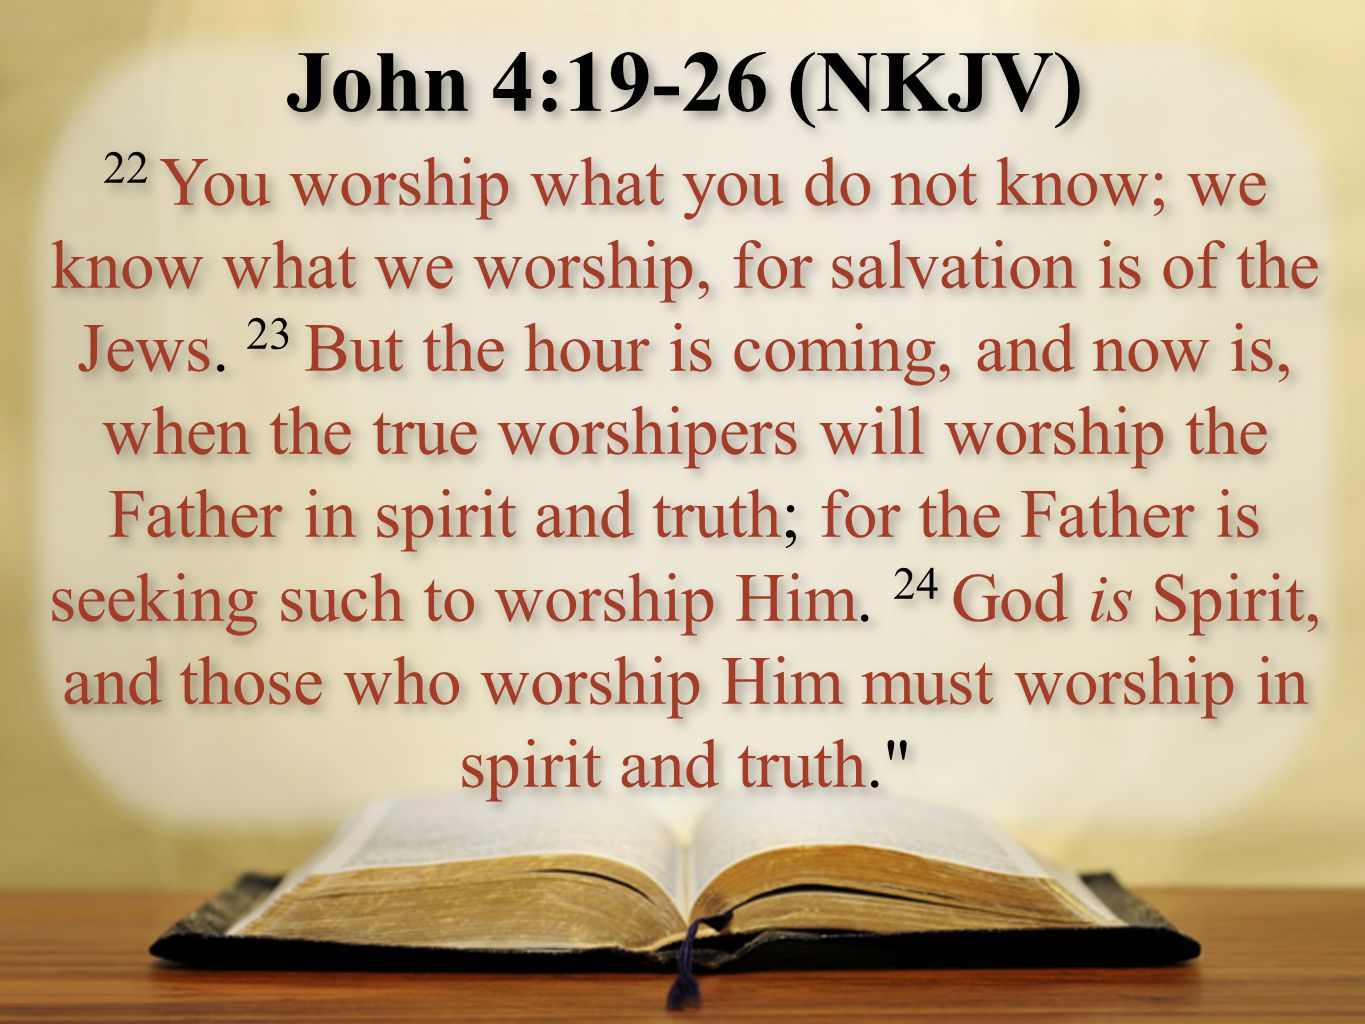 John 4:19-26 (NKJV) 22 You worship what you do not know; we know what we worship, for salvation is of the Jews. 23 But the hour is coming, and now is,